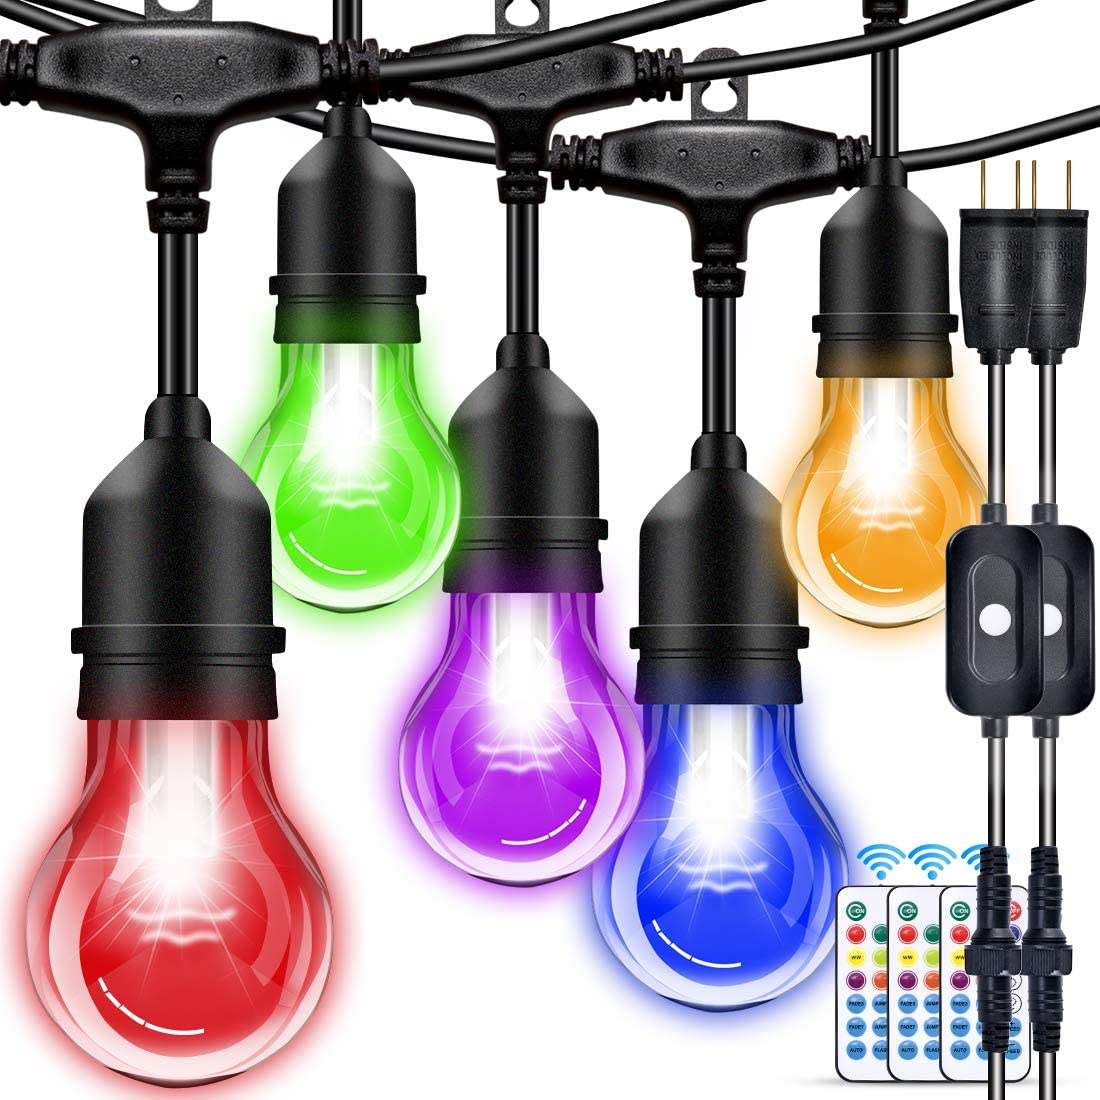 Outdoor String Lights, 96FT Multicolor LED Dimmable RGB with Remote Controller, IP65 Waterproof Commercial Grade 30+5 E26 Plastic Bulbs for Patio, Garden, Bar, Party, Wedding, Christmas